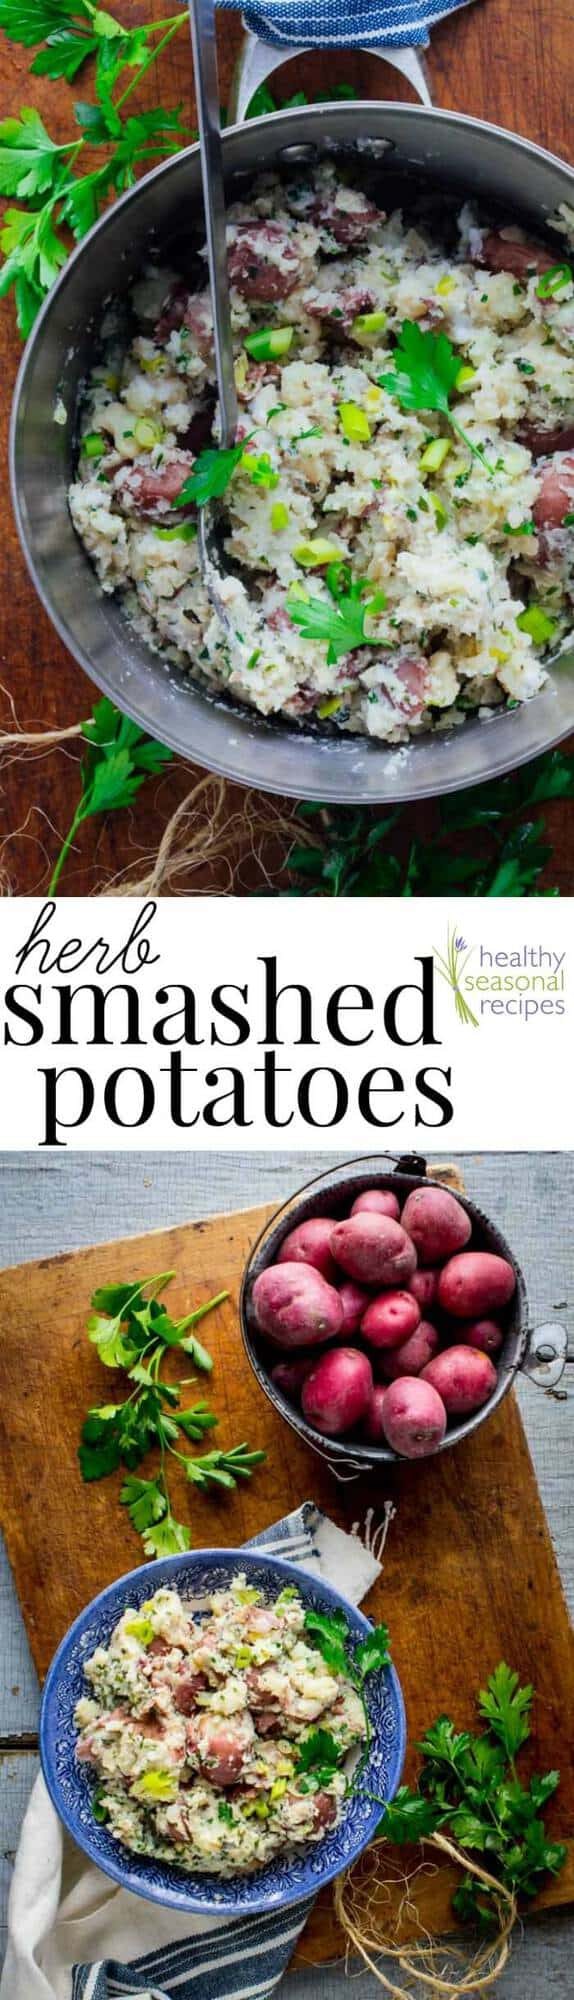 These Easy Smashed Red Potatoes are perfect for your Thanksgiving and Holiday Table. They are Vegetarian and Gluten Free, too! #Vegetarian #Glutenfree #Thanksgiving #potatorecipe #Holiday #Healthyrecipe